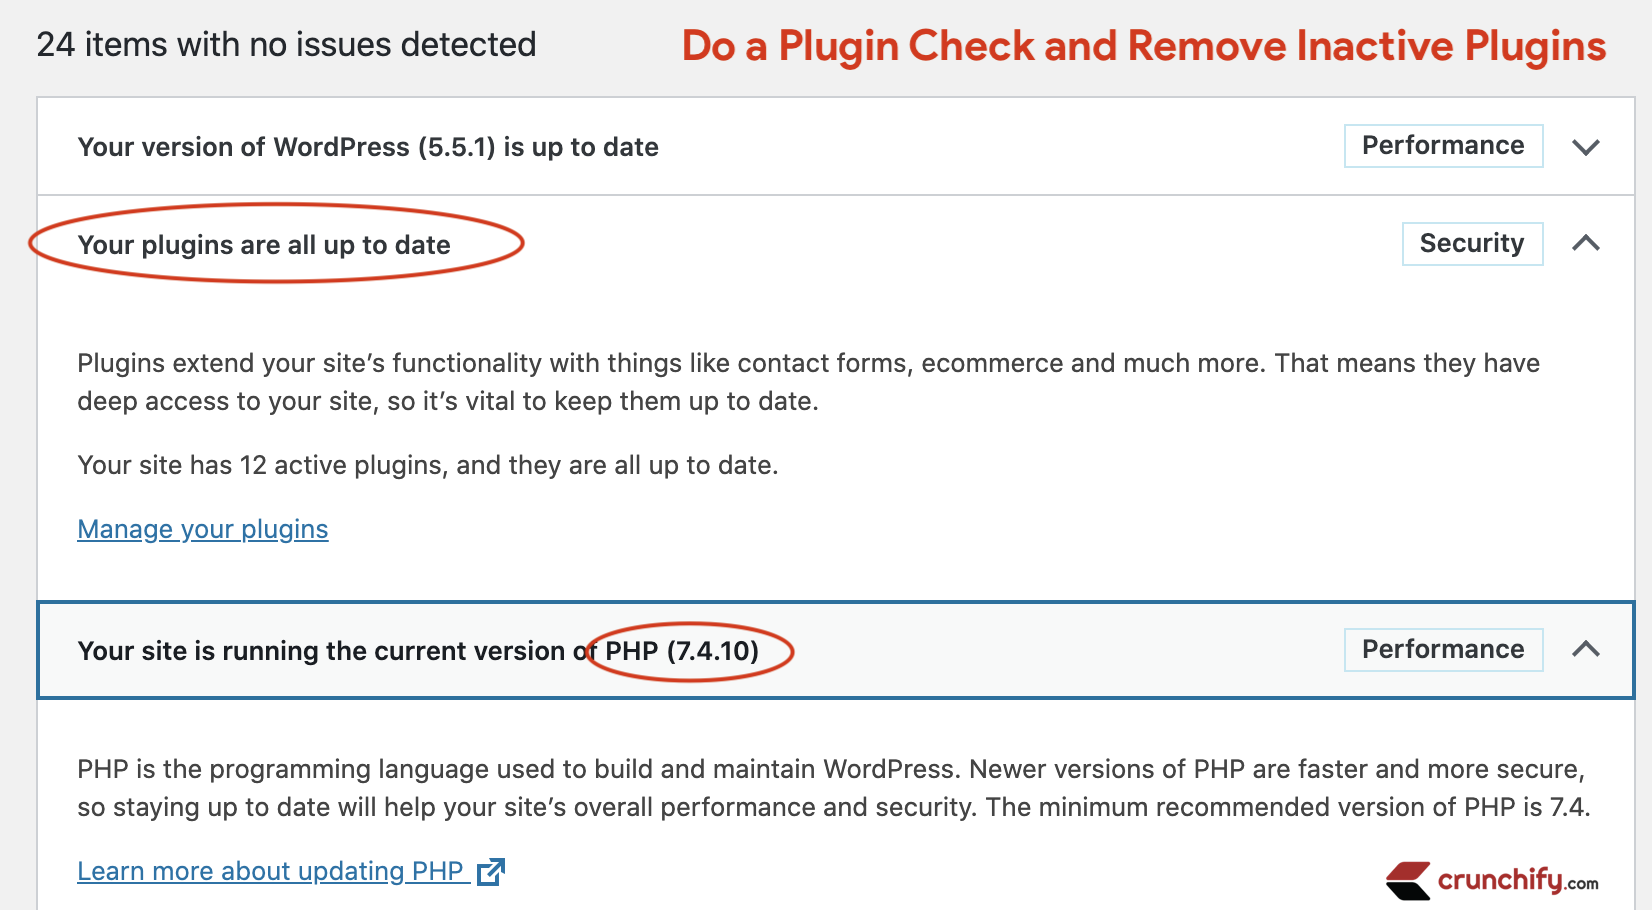 Do a Plugin Check and Remove Inactive Plugins